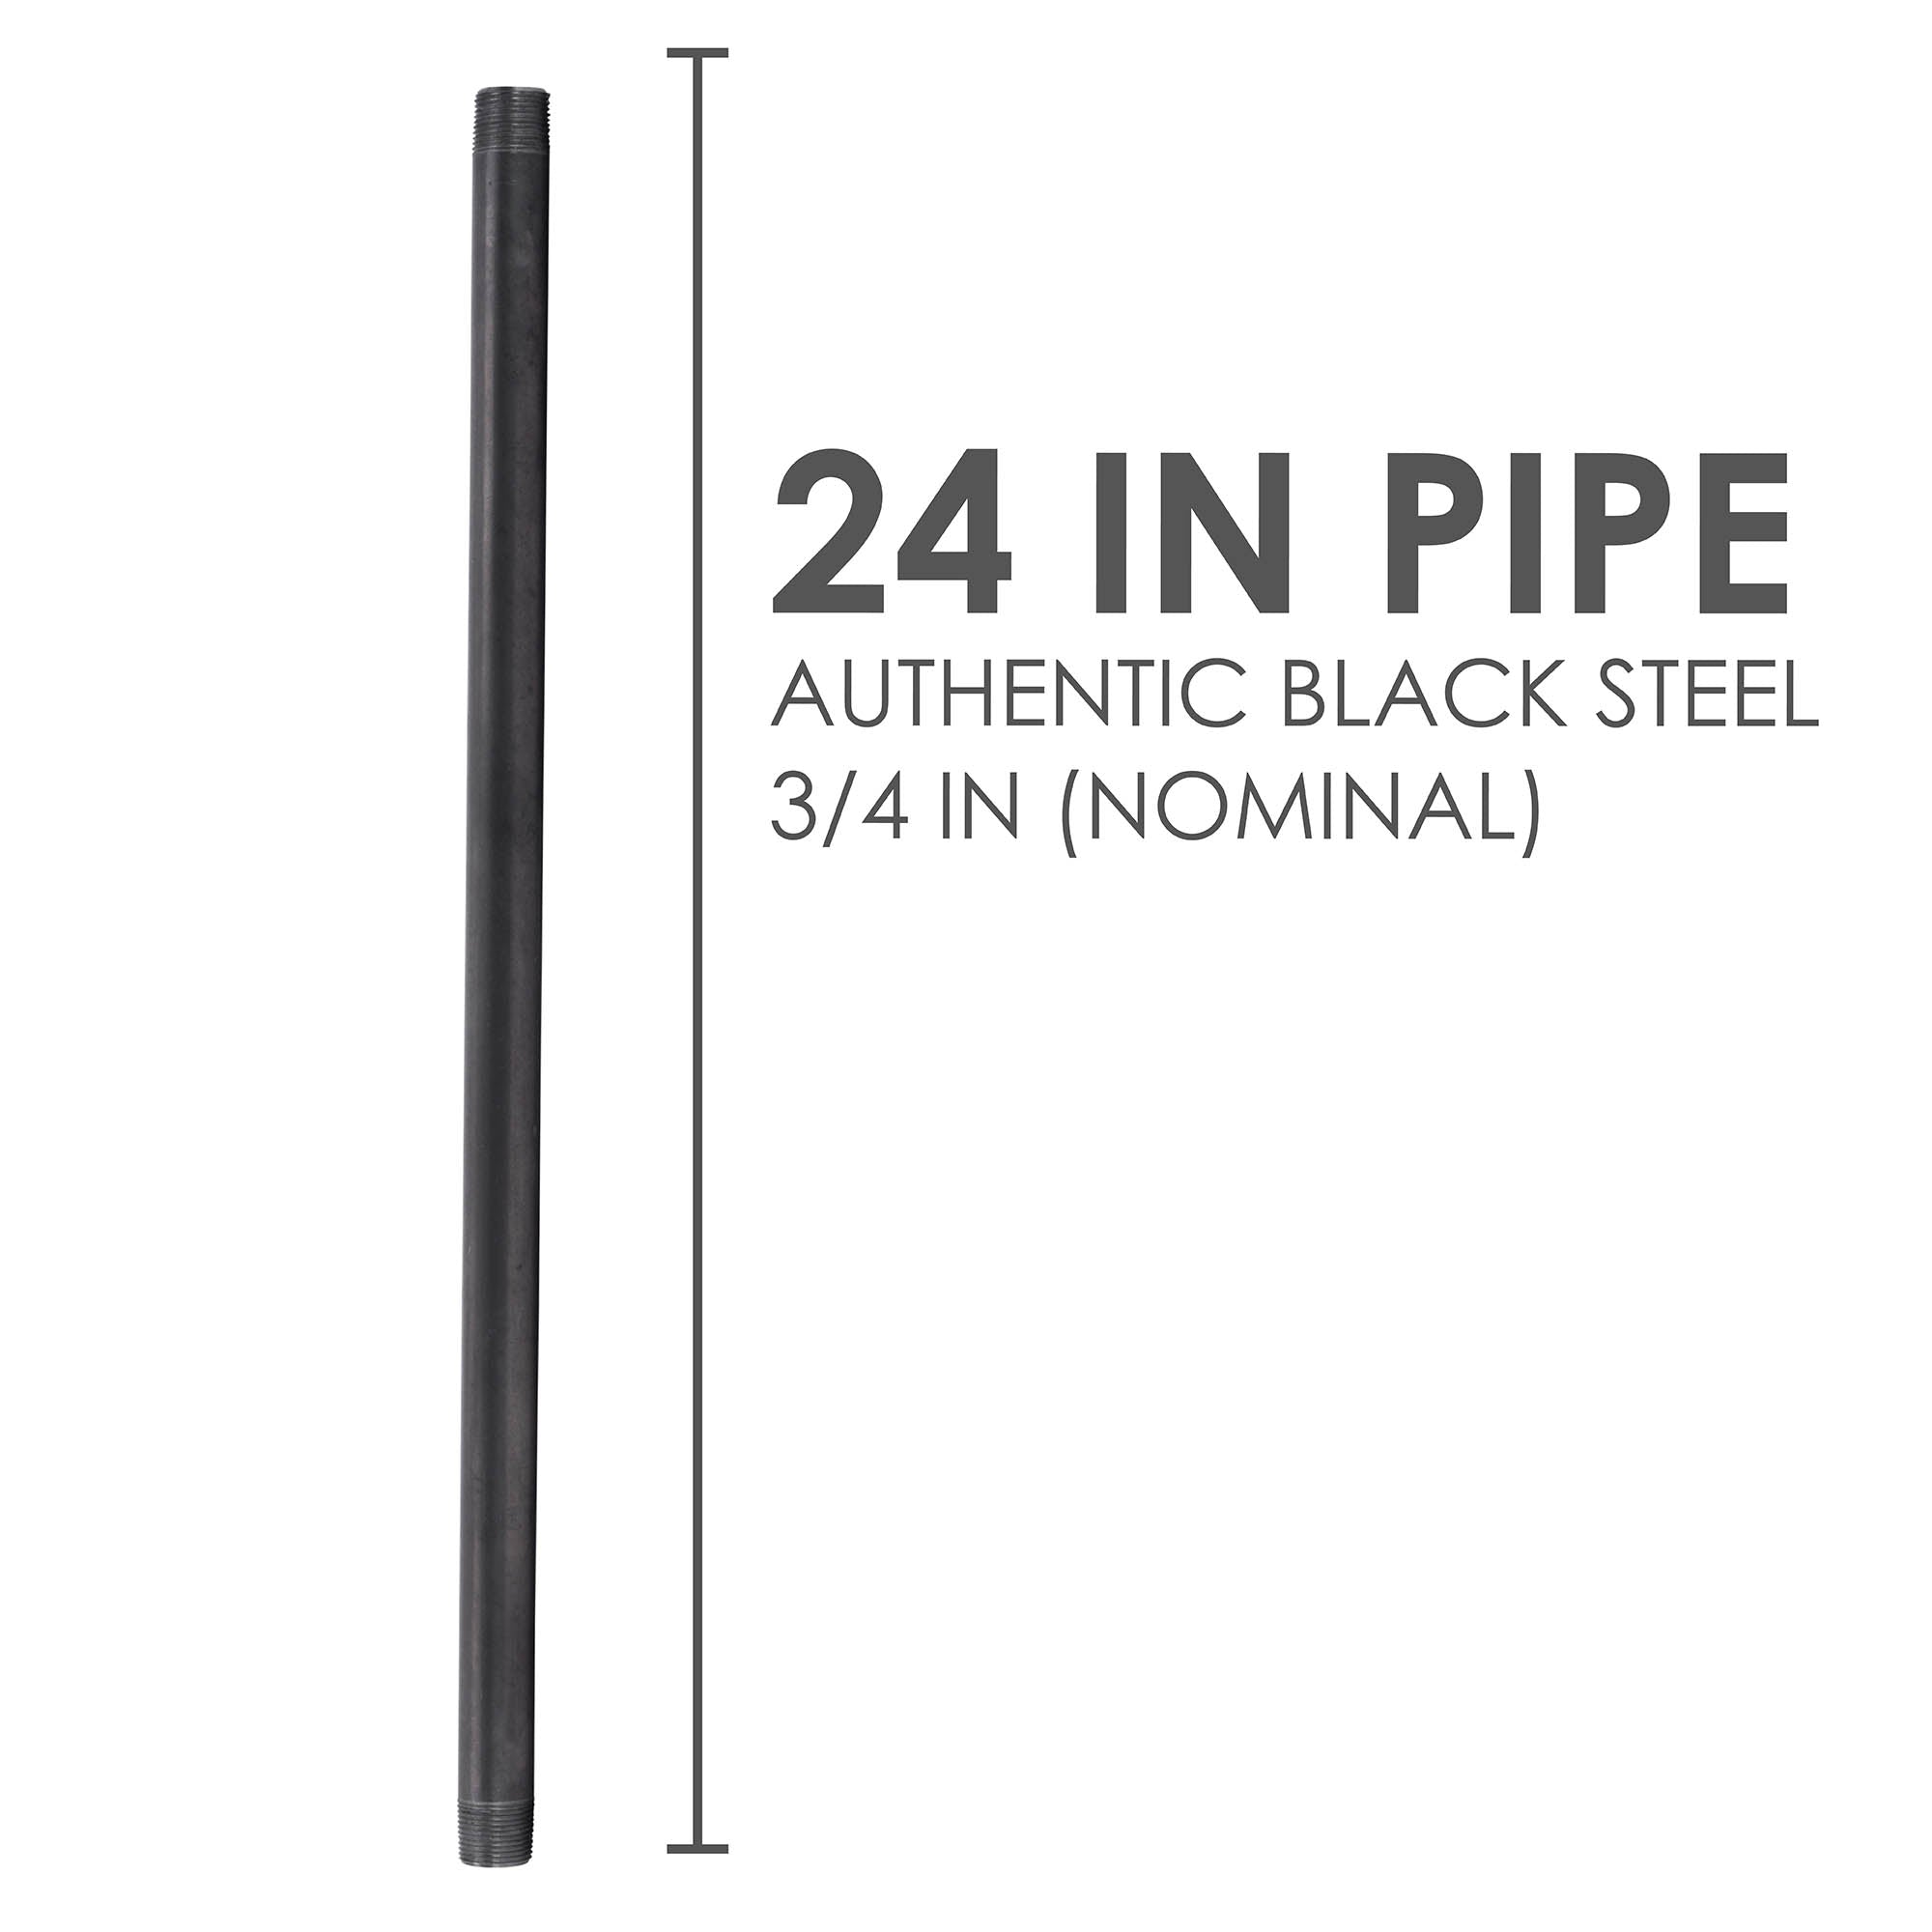 3/4 In X 24 In Black Pipe - Pipe Decor